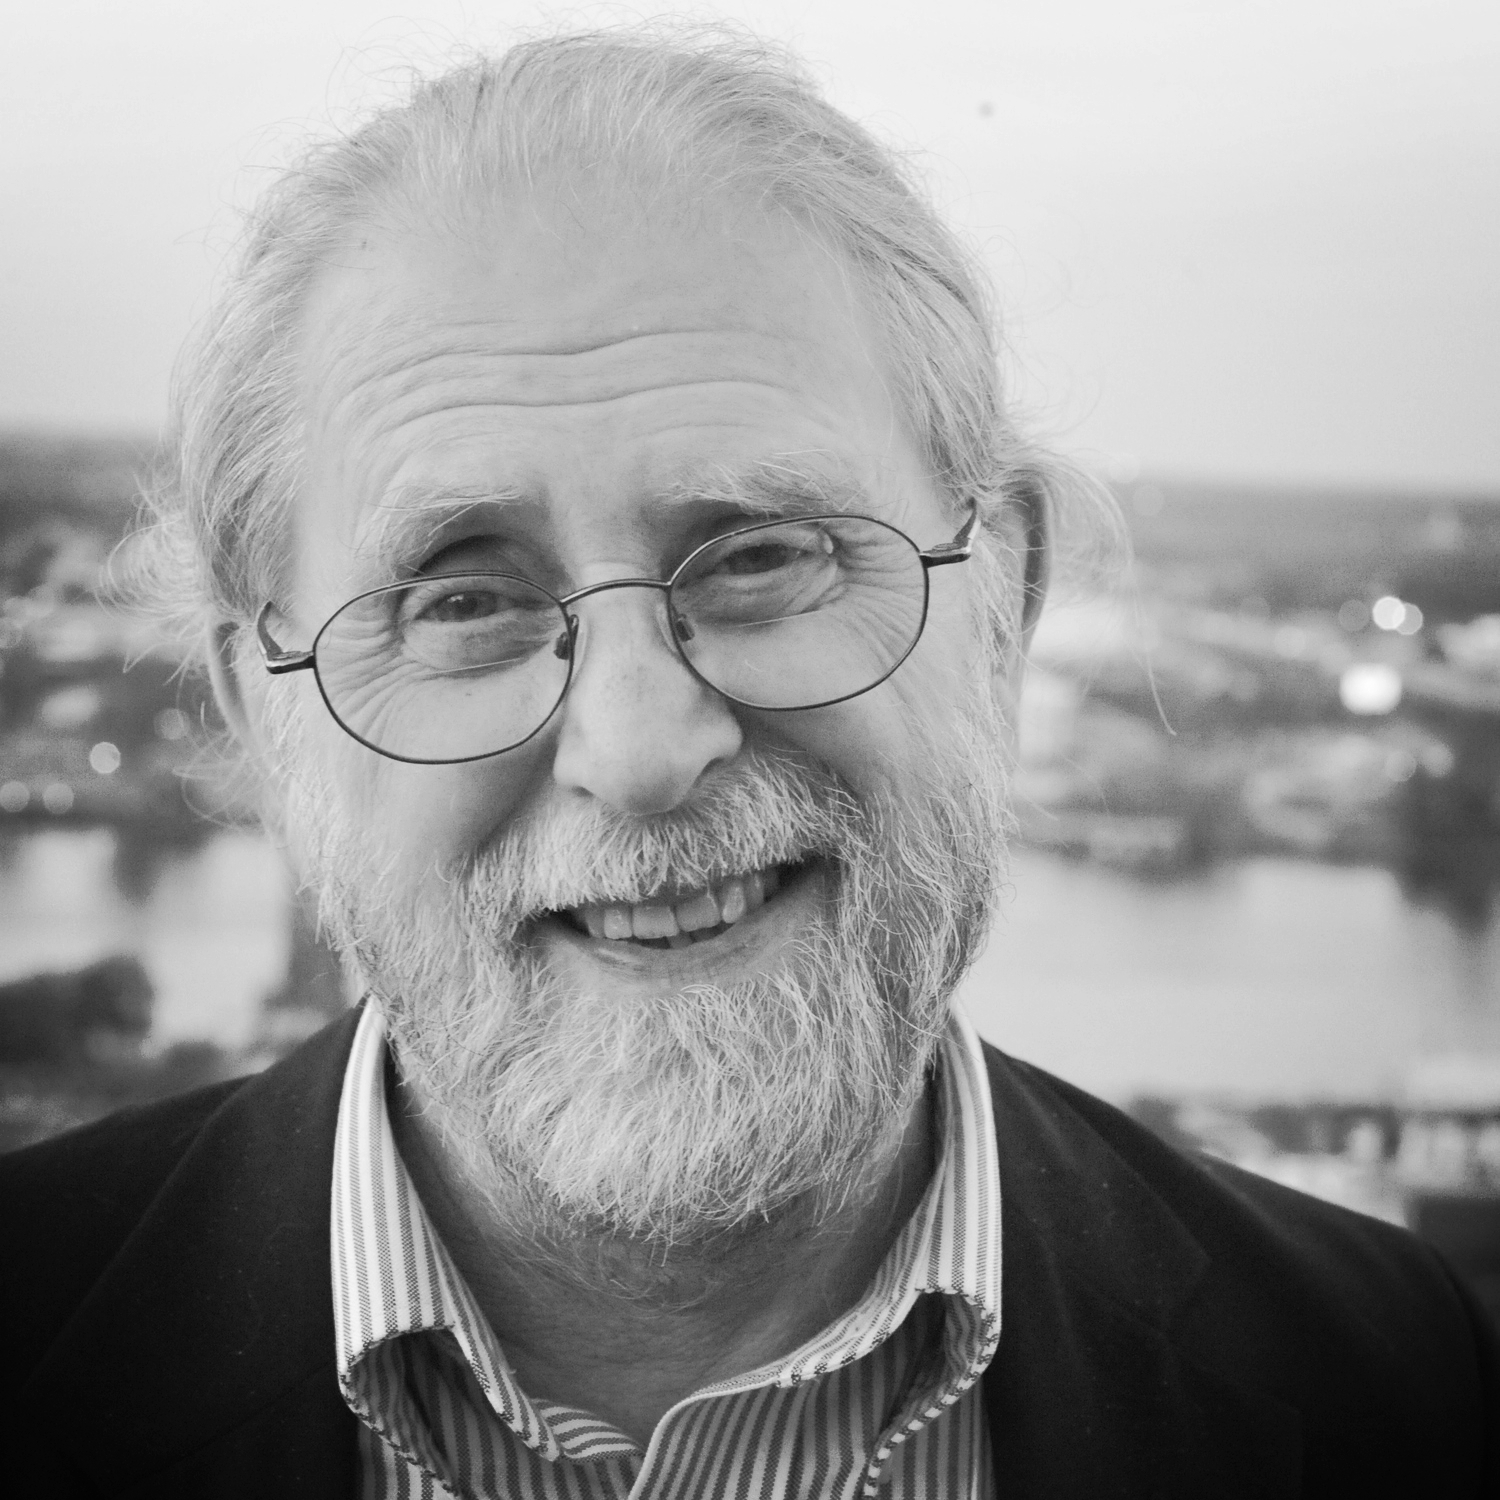 Jim (Dorje) Rush, Phd 1941-2018   Professor of Philosophy and Religious Studies with 40 years of teaching experience and over 45 years of meditation experience.  Jim has taught at Philander Smith College since 1976 and at Arkansas Governor's School since 1979. He taught Medical Ethics at the University of Arkansas for Medical Sciences for over 25 years. He has been a Methodist Minister for over 50 years, now retired, he once served churches in Connecticut, New York and Arkansas.  Jim studied with Dr. Lawrence LeShan in the art of Spiritual Healing, and Holotropic Breathwork with Stan and Christina Grof.  Jim has studied with Eastern and Western teachers with emphasis in Mahayana and Vajrayana Buddhism, Buddhist ethics, Tibetan Book of The Dead, Phowa, Medicine Buddha, Dzogchen and the non-dual teachings of Adyashanti.  His main Buddhist teachers have been Lama Tharchin Rinpoche, Lama Dechen Yeshe Wangmo, and Anam Thubten Rinpoche.  Jims credentials: Phd in Philosophy and Religious Studies, Methodist Minister (retired), Certified Holotropic Breathwork Facilitator.